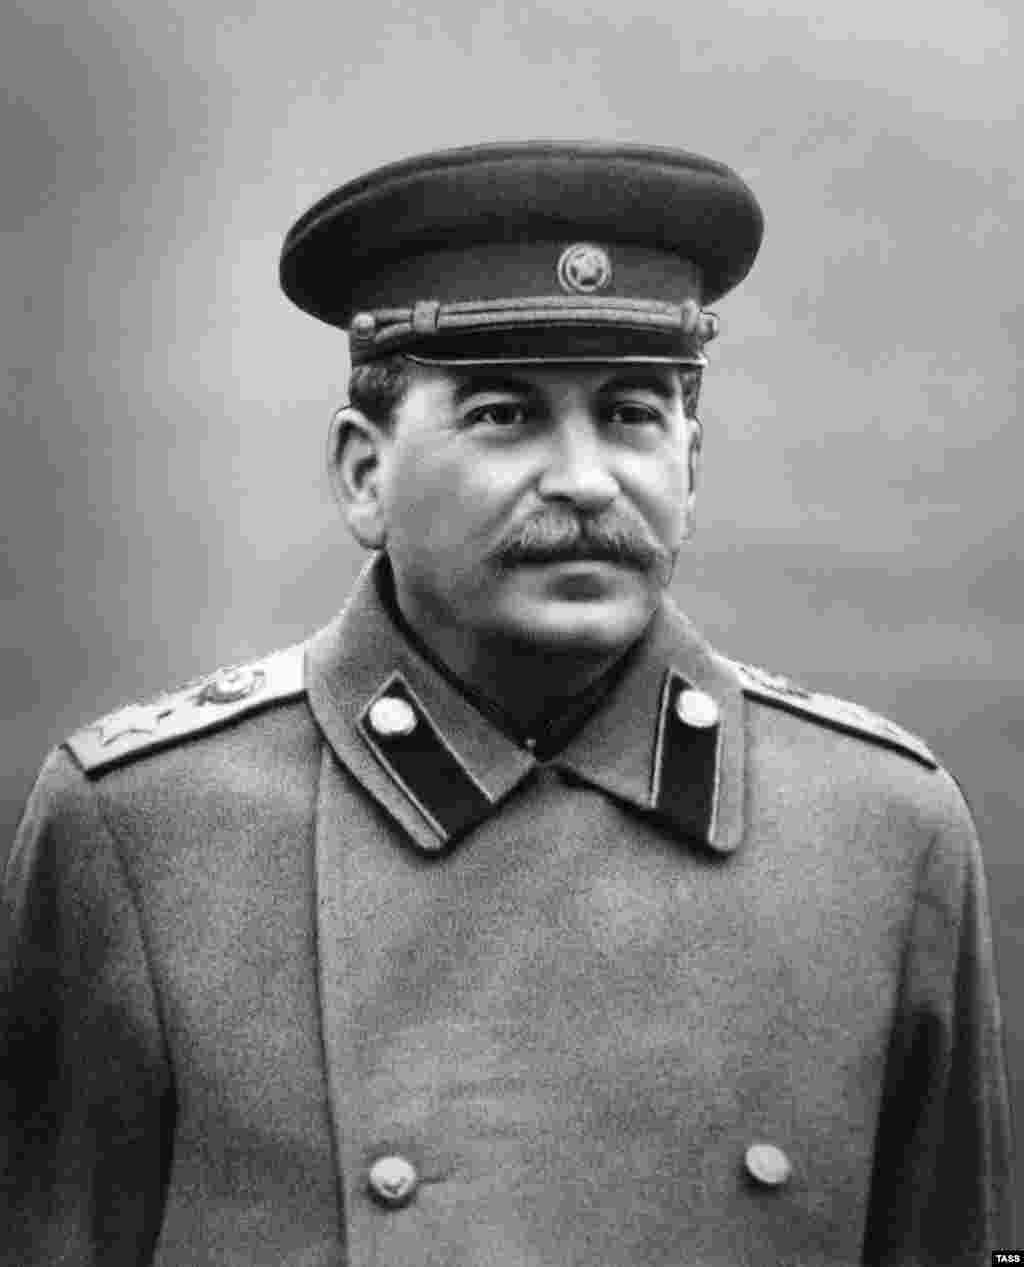 A smooth-skinned Stalin in 1945, though in reality he had a pock-marked, poor complexion. After World War II, image retouching became more subtle and is harder to identify.